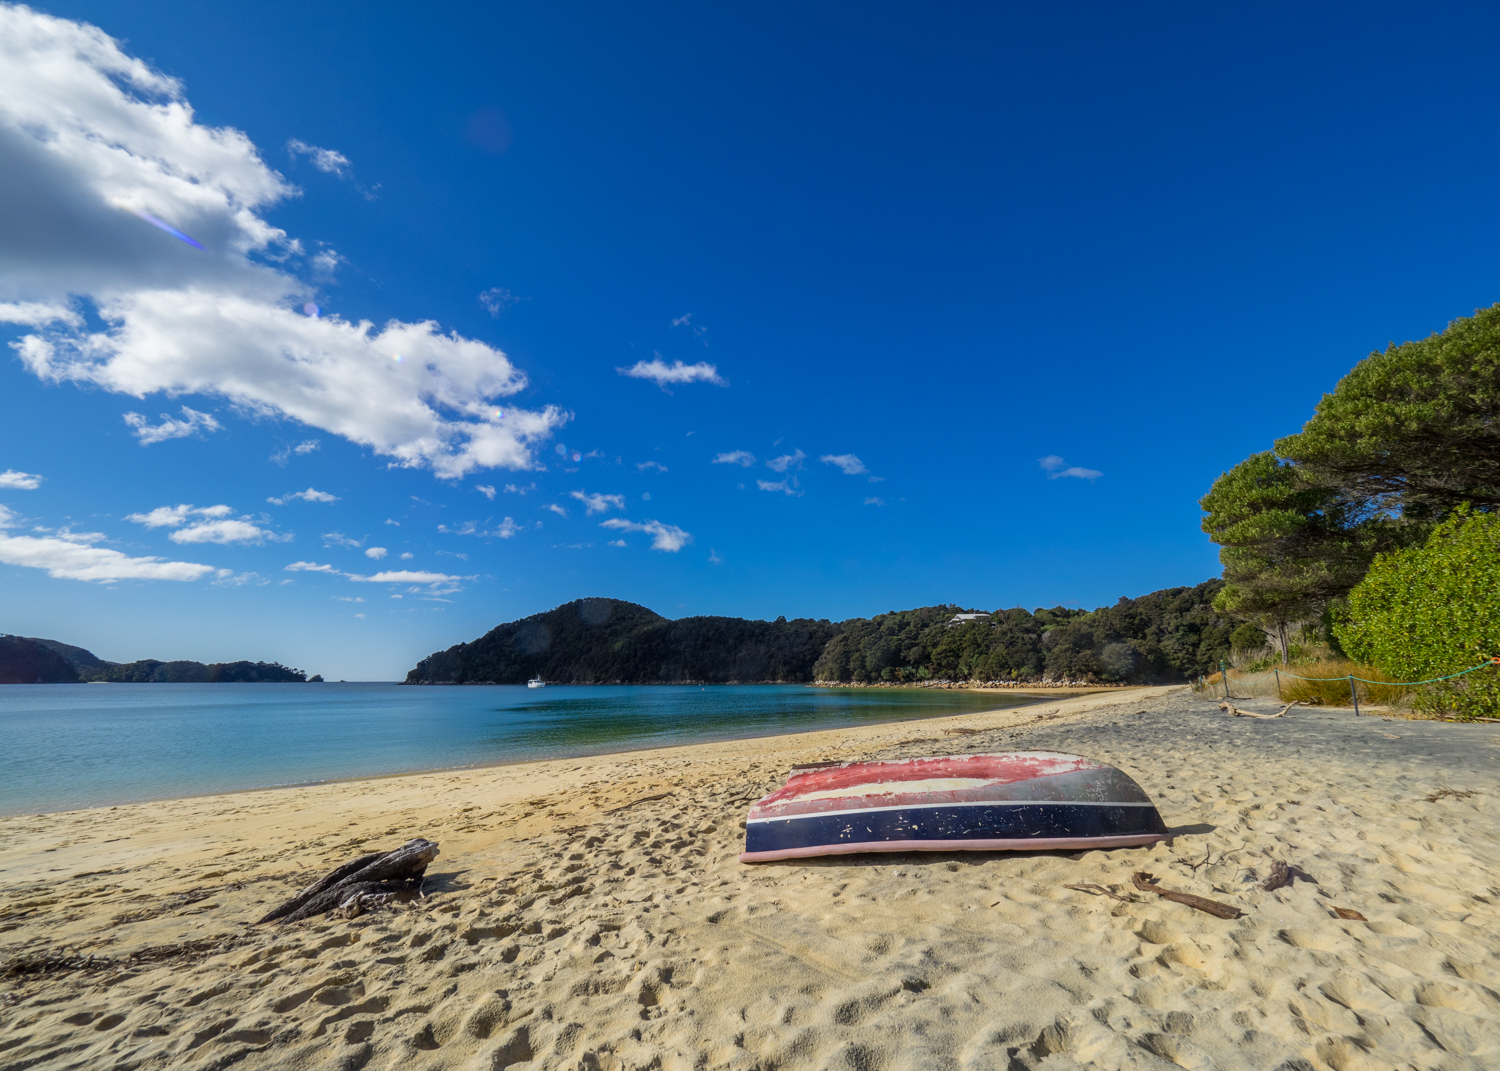 Anchorage, Abel Tasman National Park, Nelson, NZ. 1/1000sec, f/6.3, ISO200